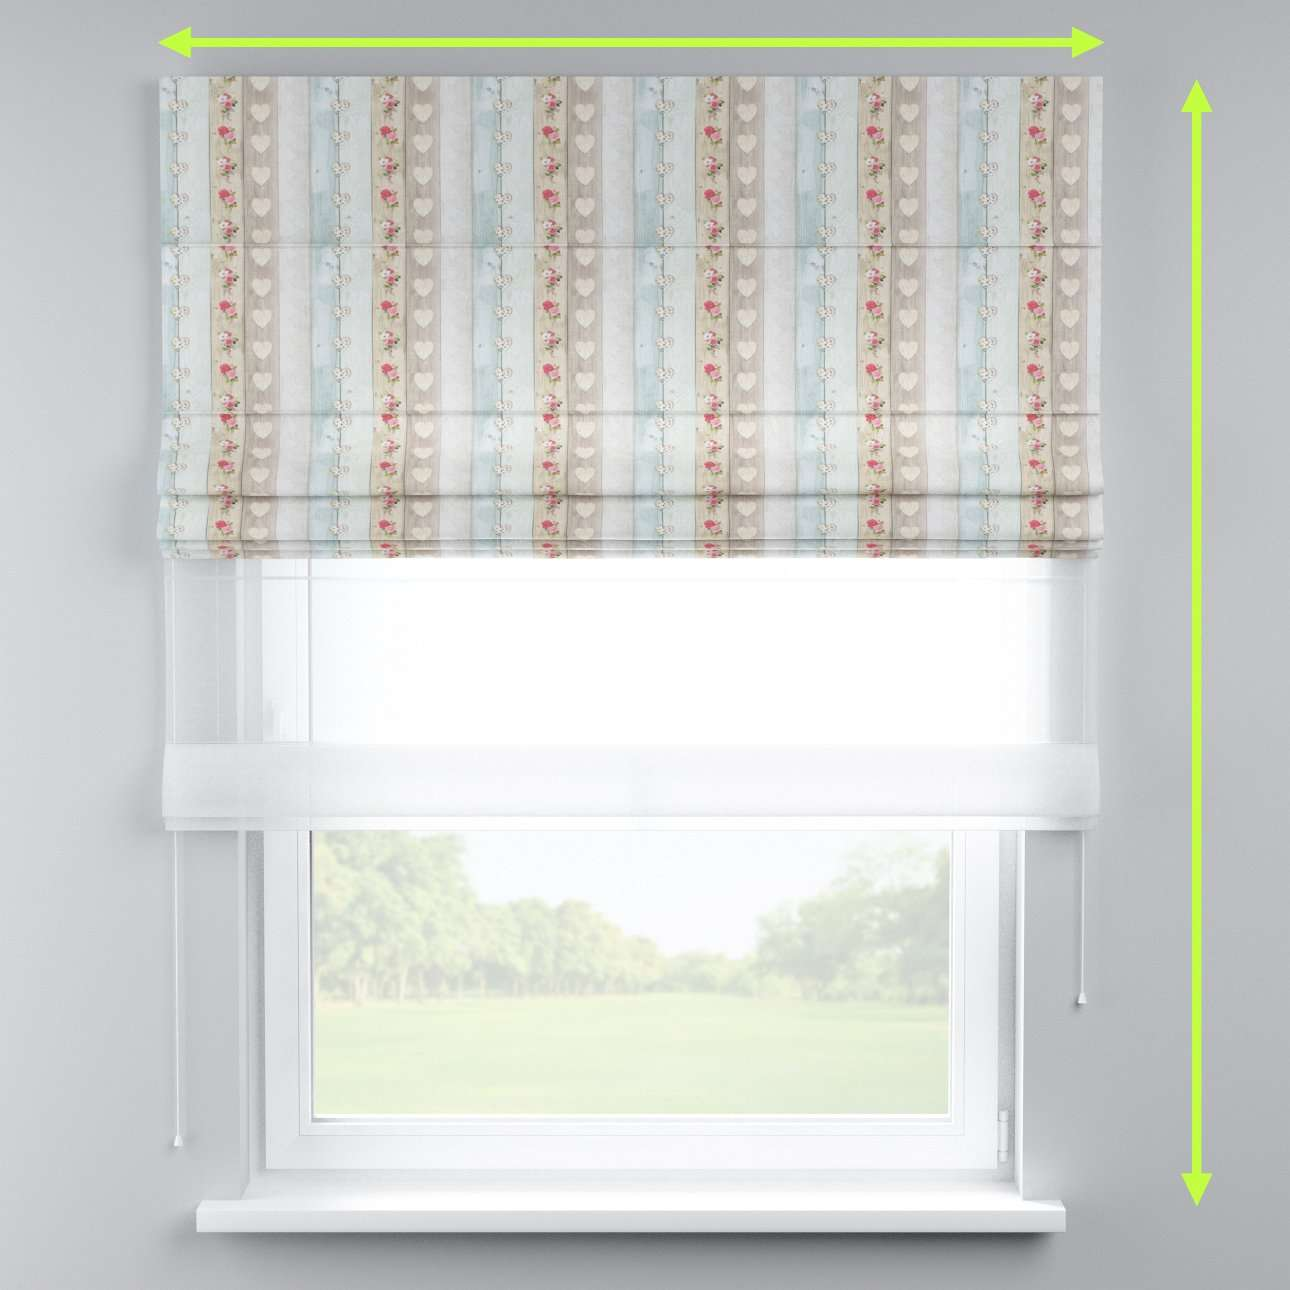 Voile and fabric roman blind (DUO II) in collection Ashley, fabric: 140-20